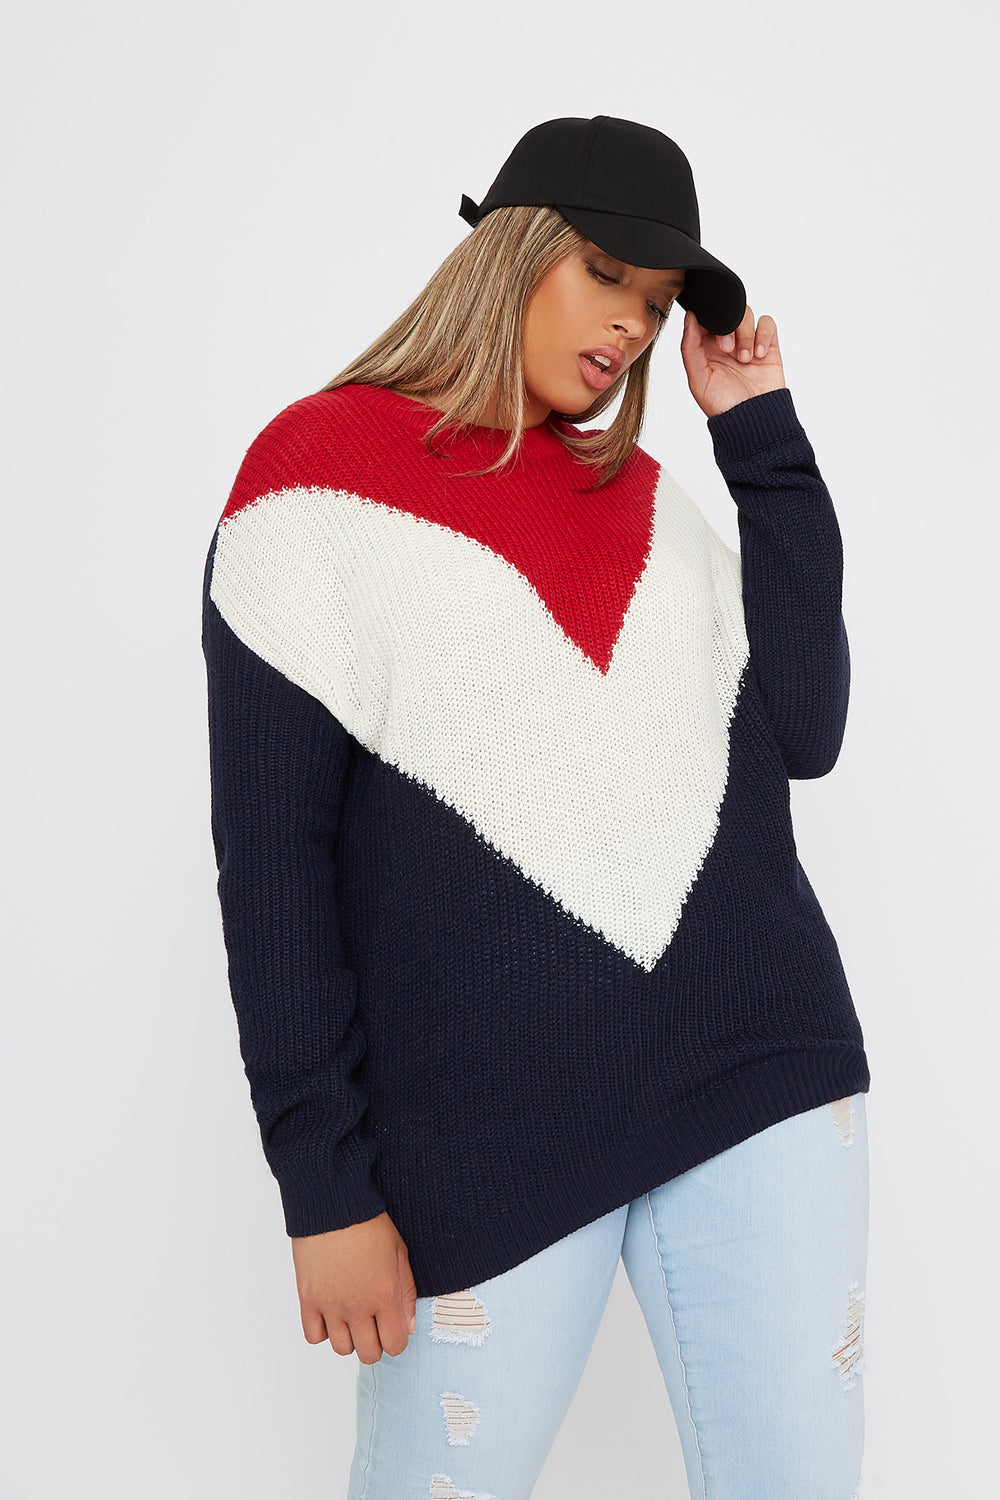 Plus Size Crochet Chevron Colour Block Sweater Red